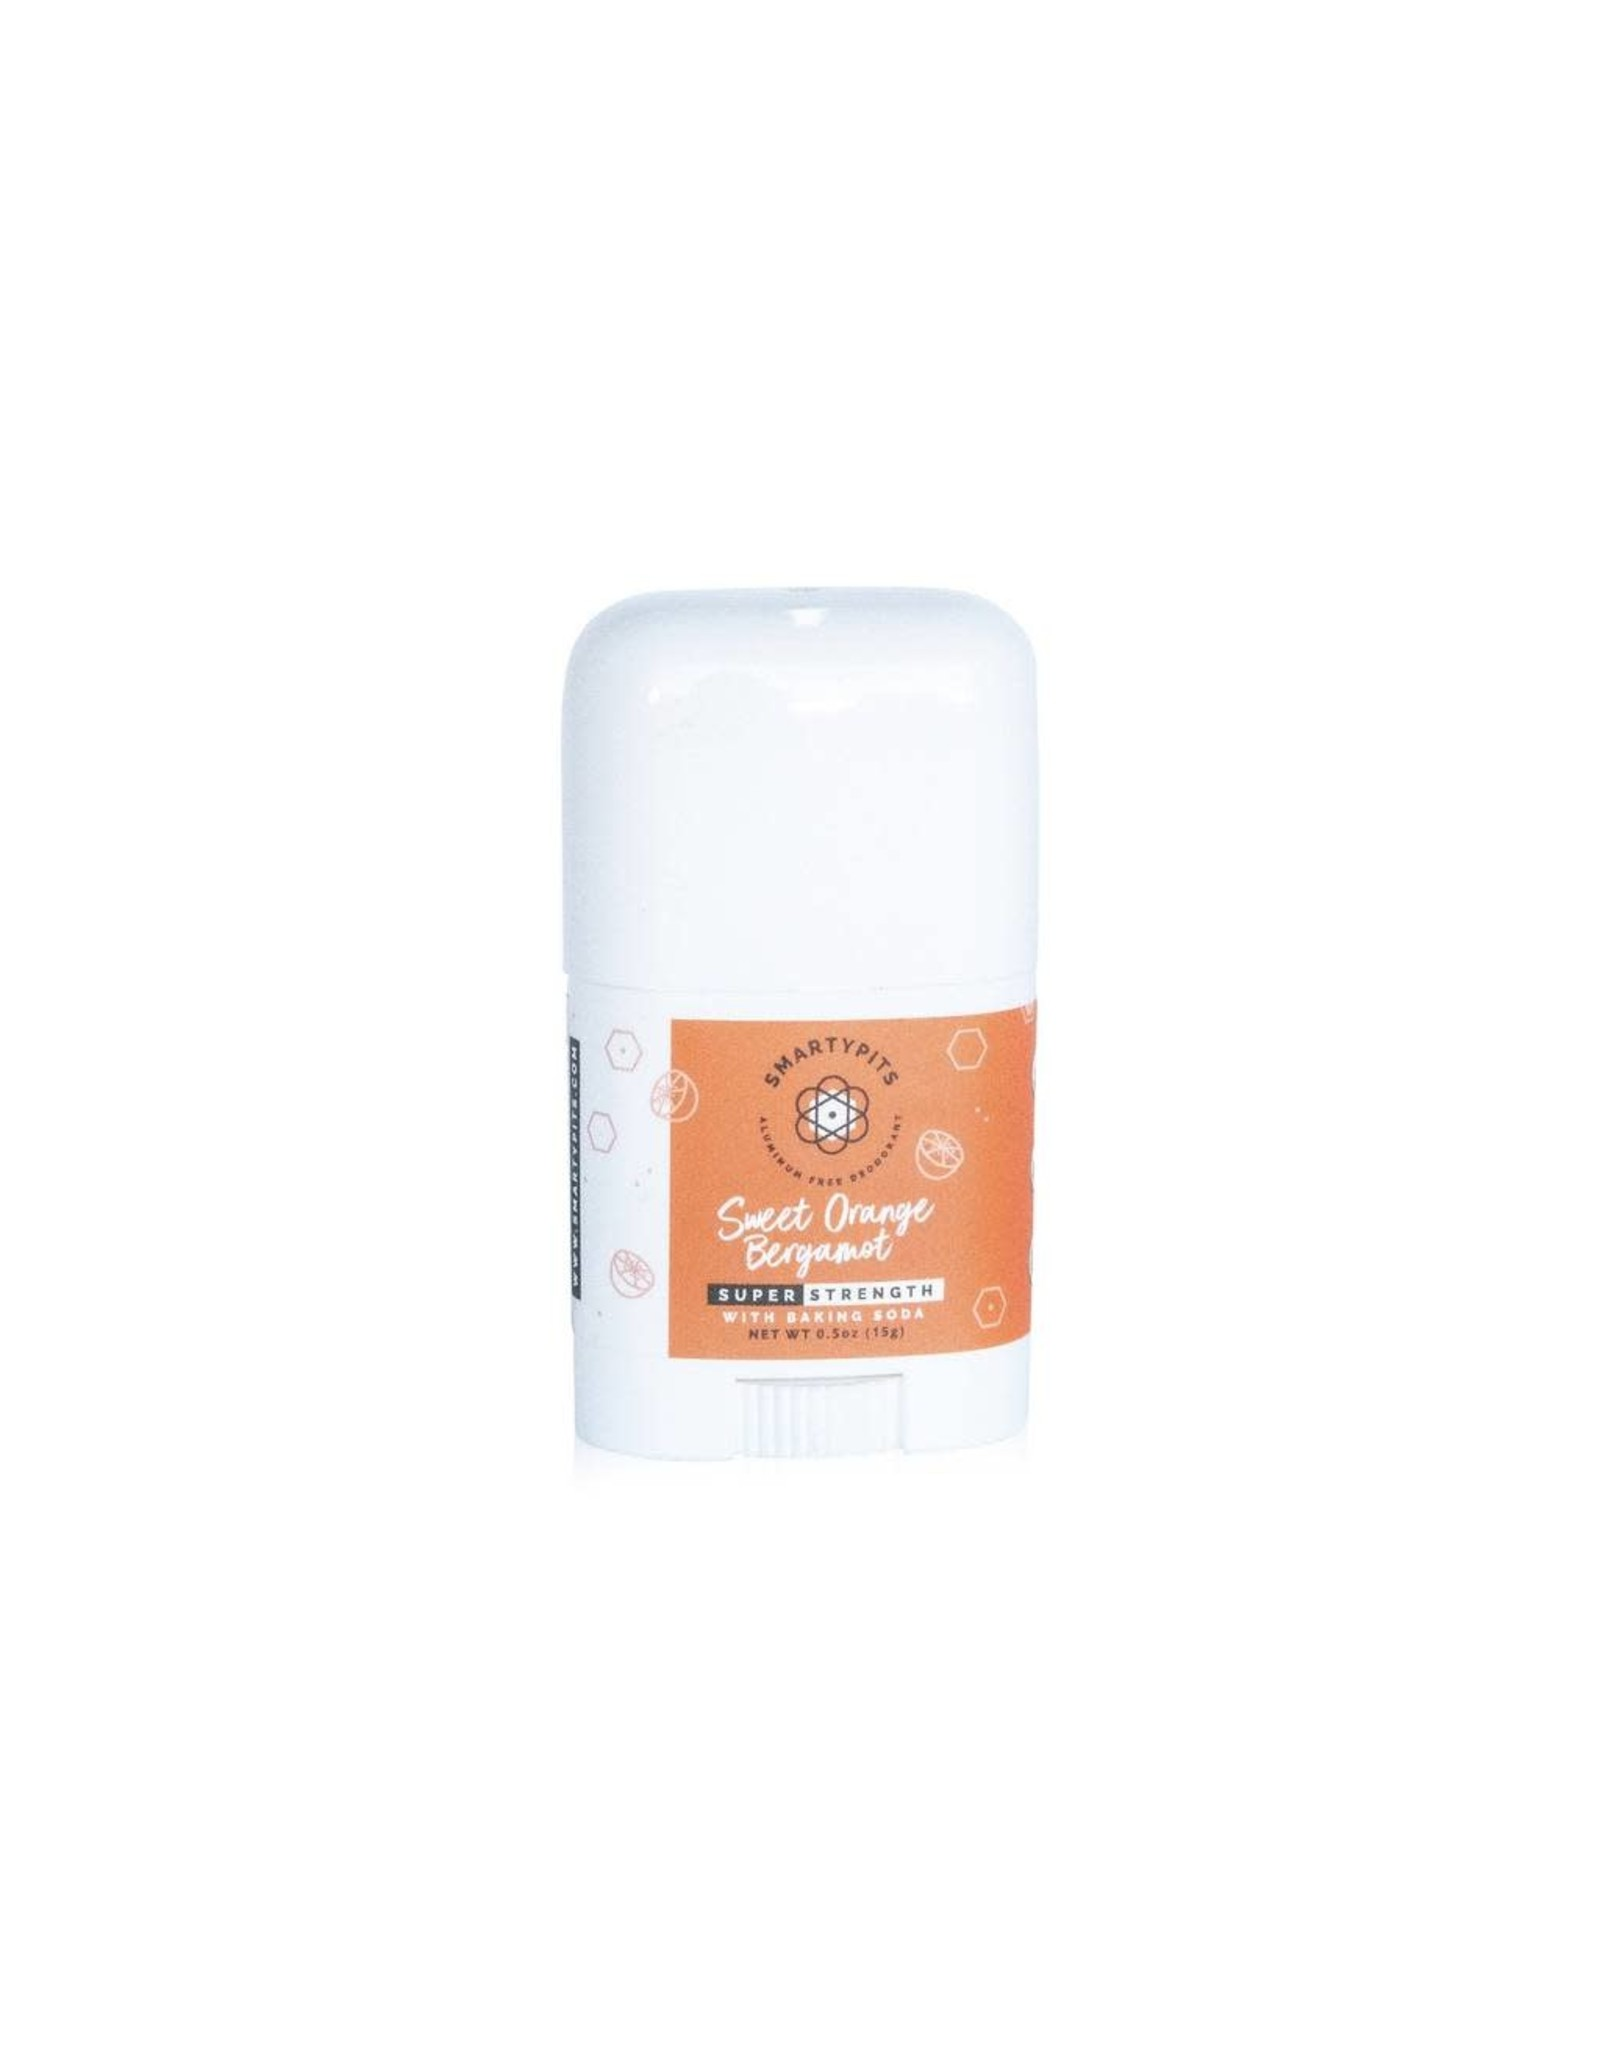 Deodorant, Aluminum Free, Sweet Orange Bergamot  0.5 oz